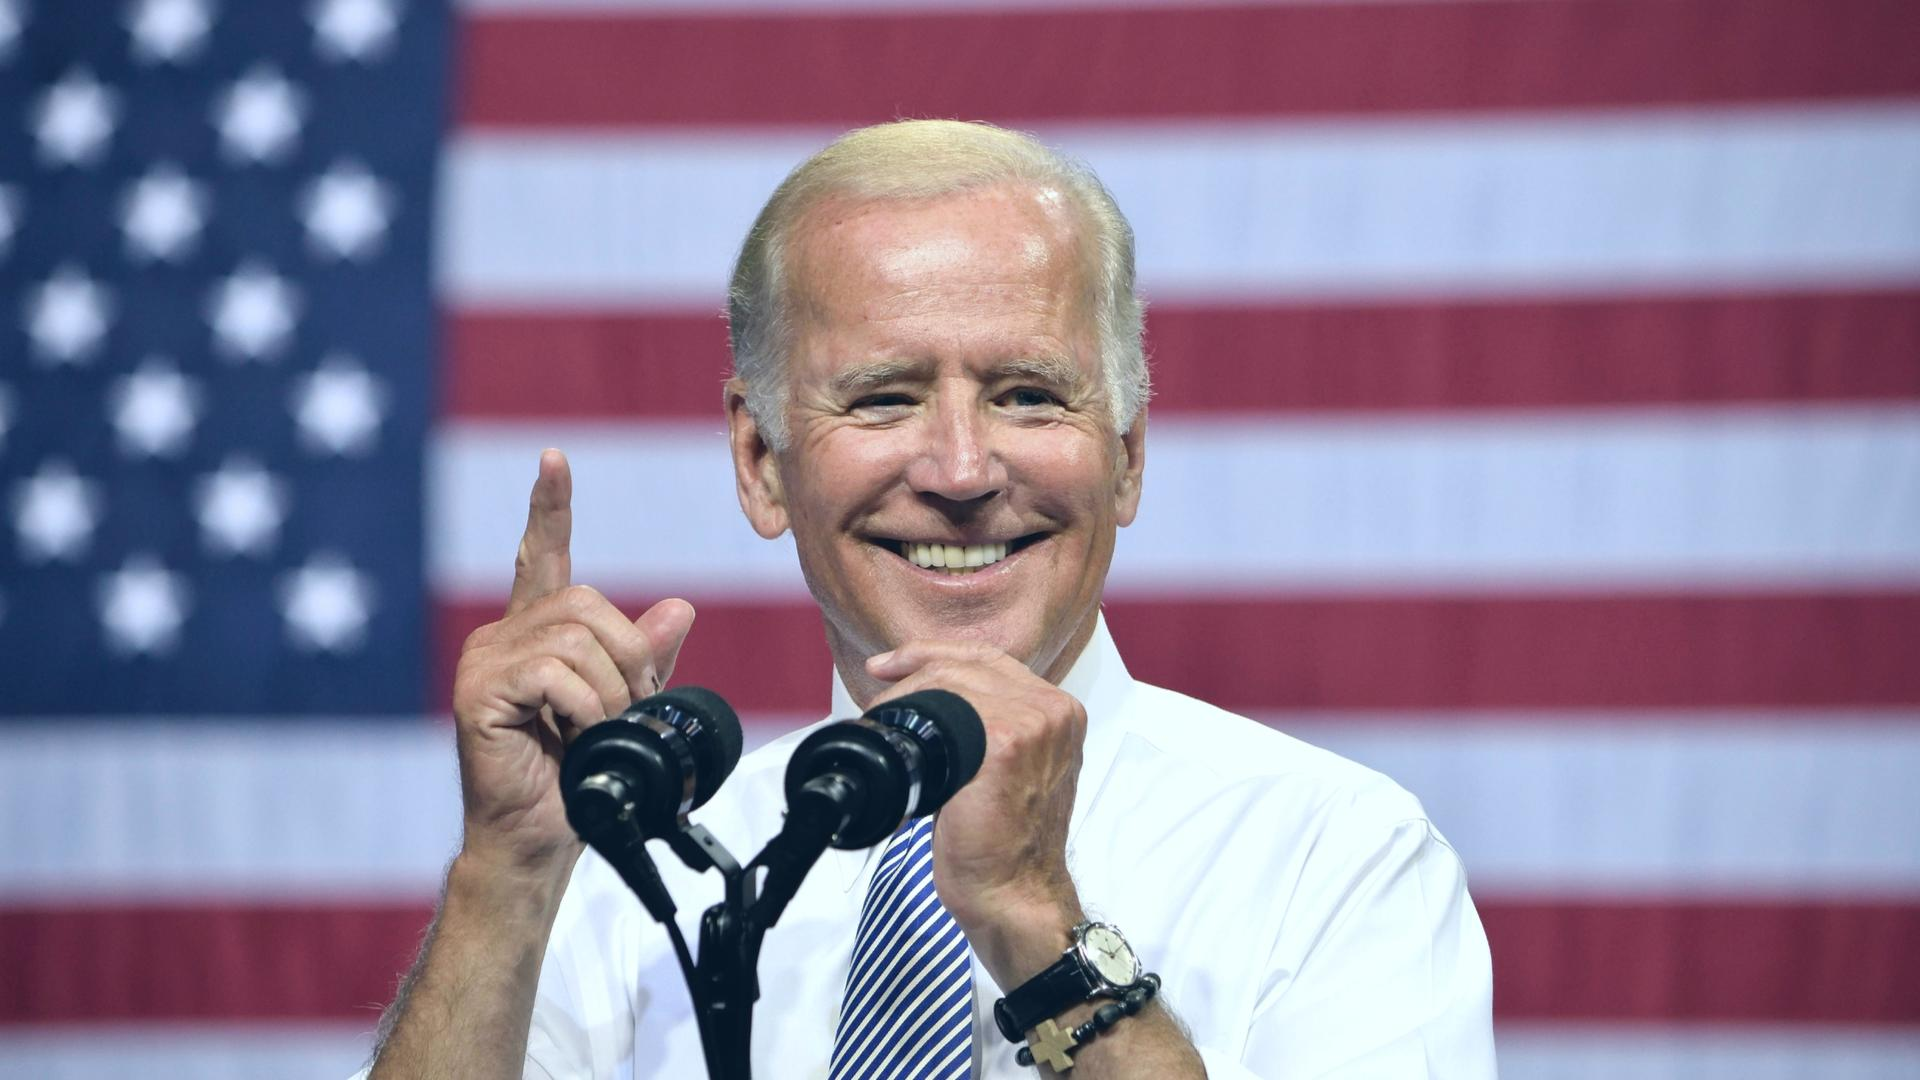 Just How Rich Are President Joe Biden and These Other Big Names?